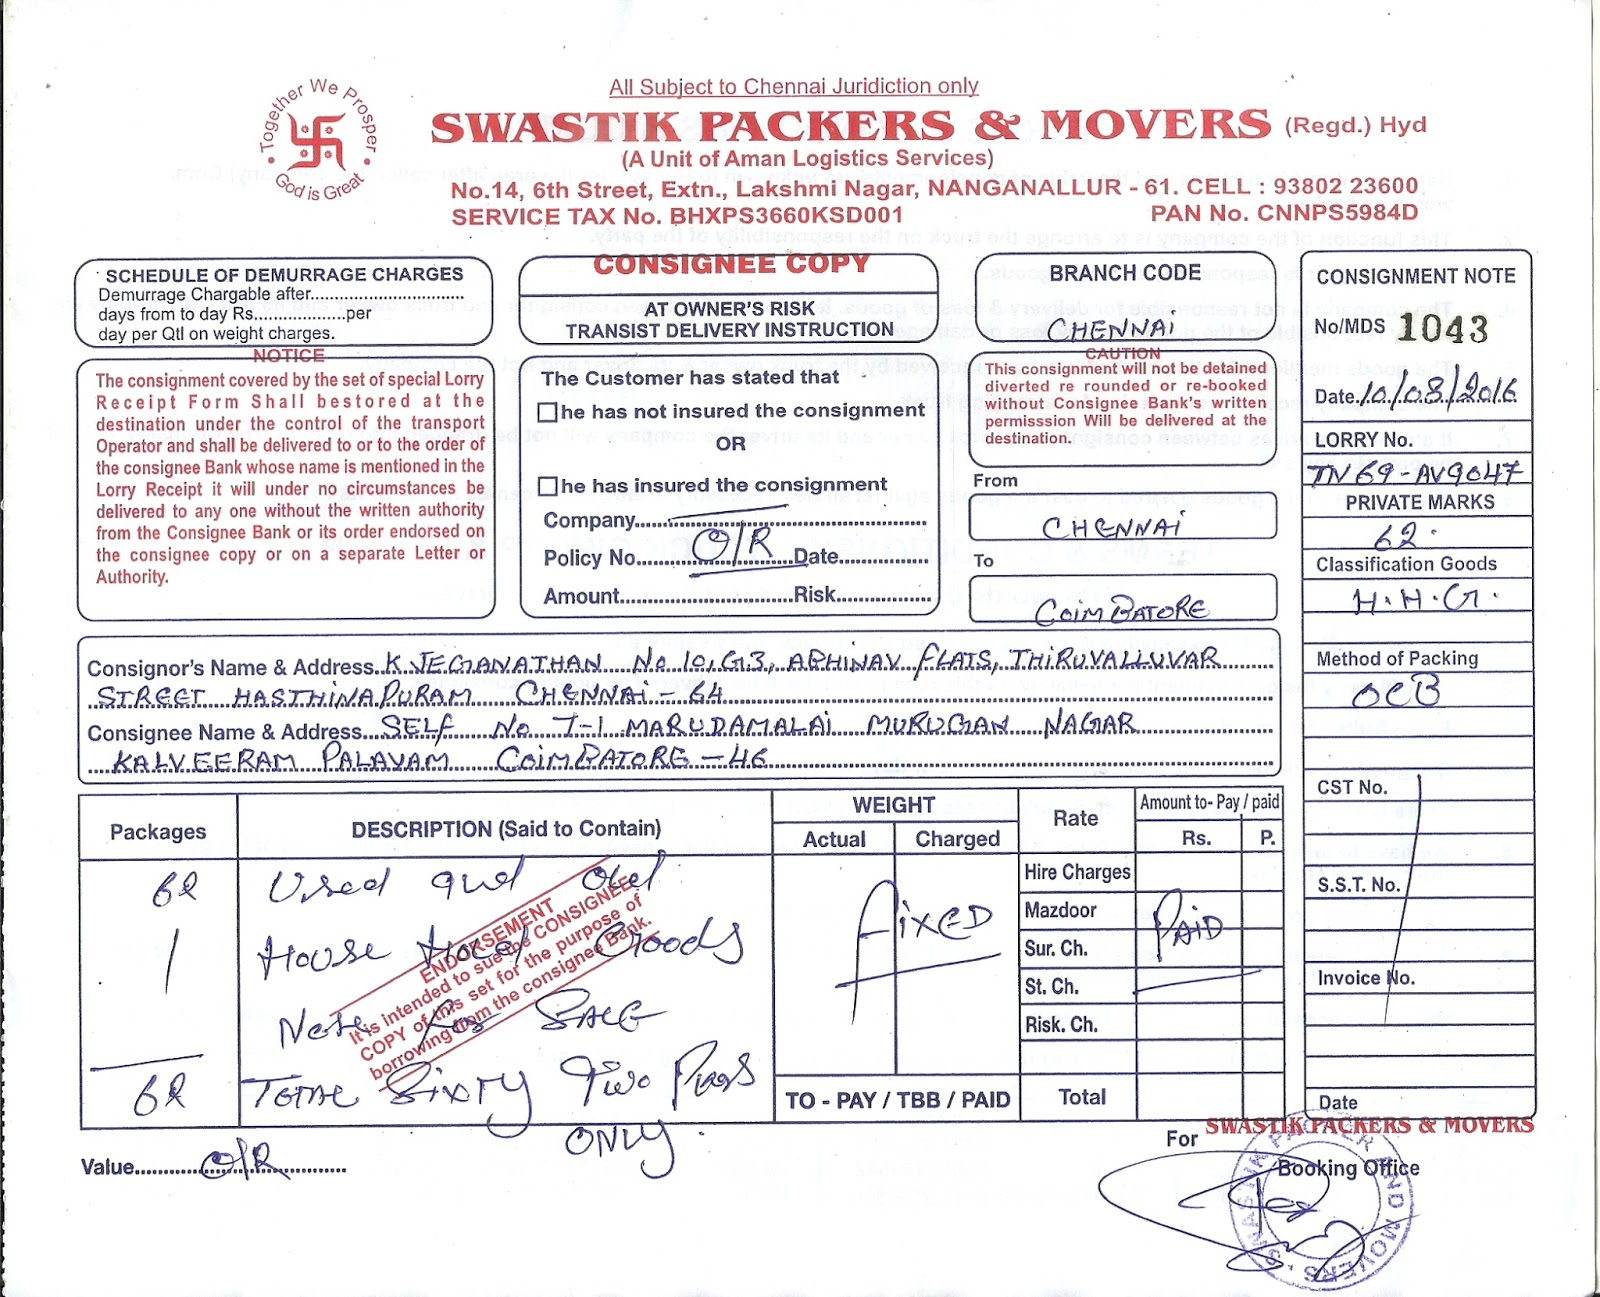 swastik packers and movers bill format